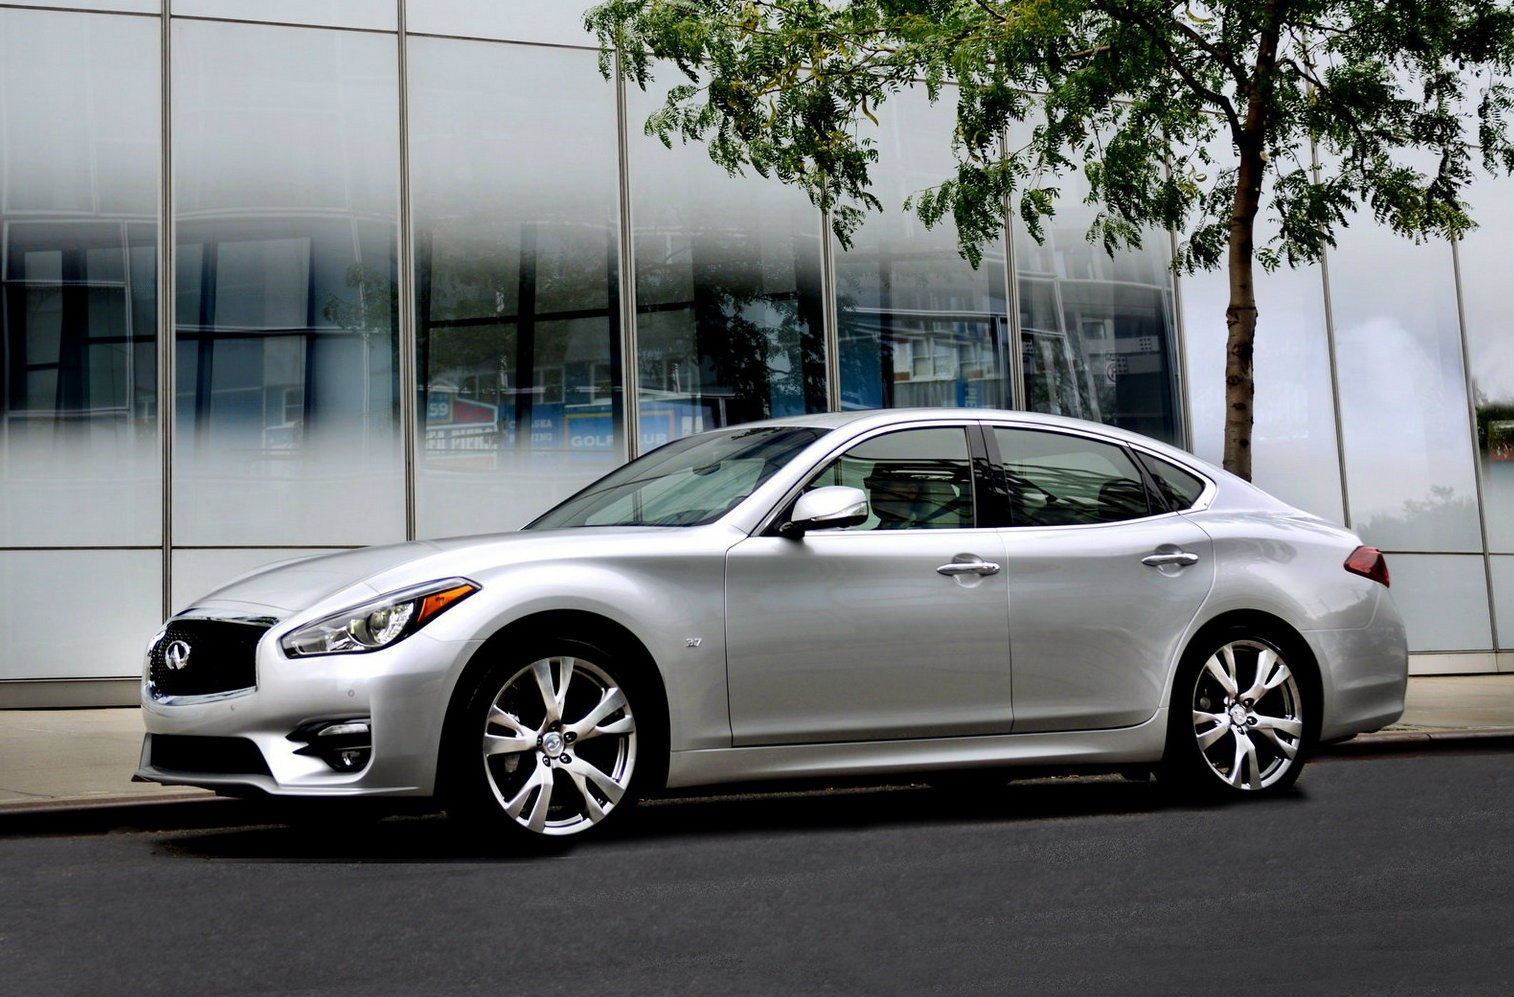 2015 infiniti q70 european pricing announced starts at 47 750 autoevolution. Black Bedroom Furniture Sets. Home Design Ideas